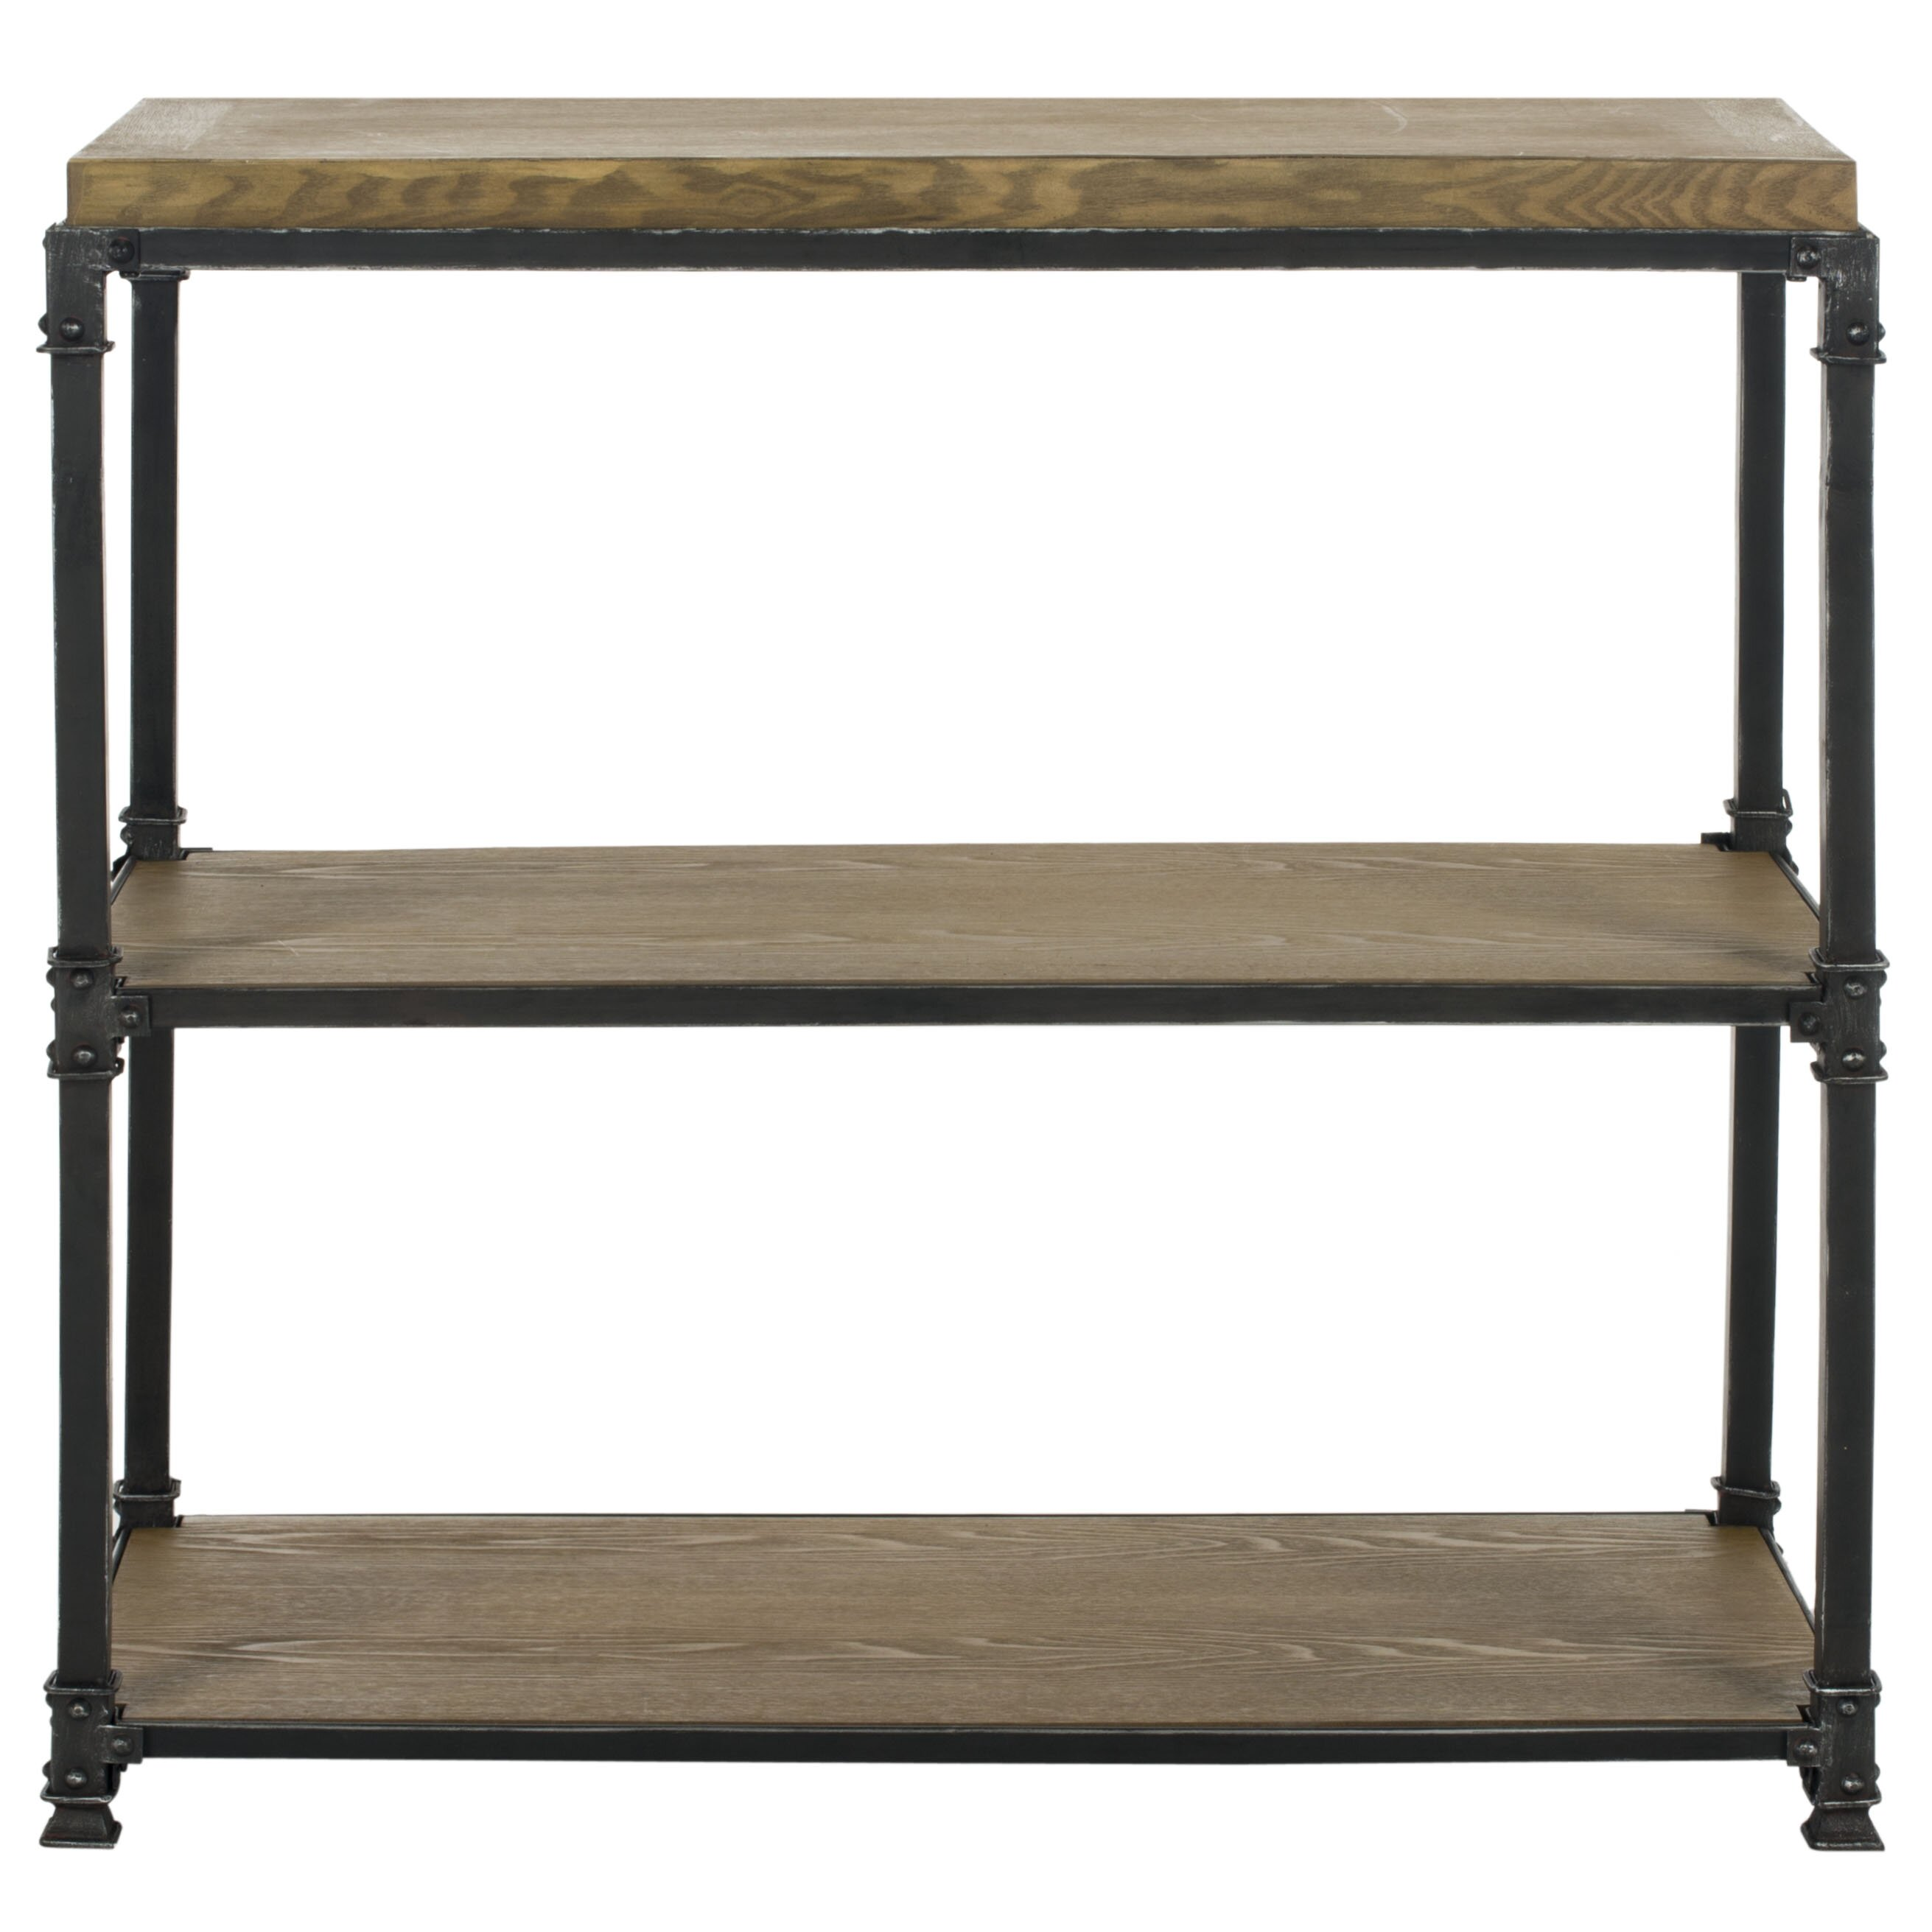 #78674A Furniture Accent Furniture 2 Shelf Bookcases Safavieh SKU: FV34279 with 2622x2622 px of Brand New Target Furniture Shelves 26222622 pic @ avoidforclosure.info